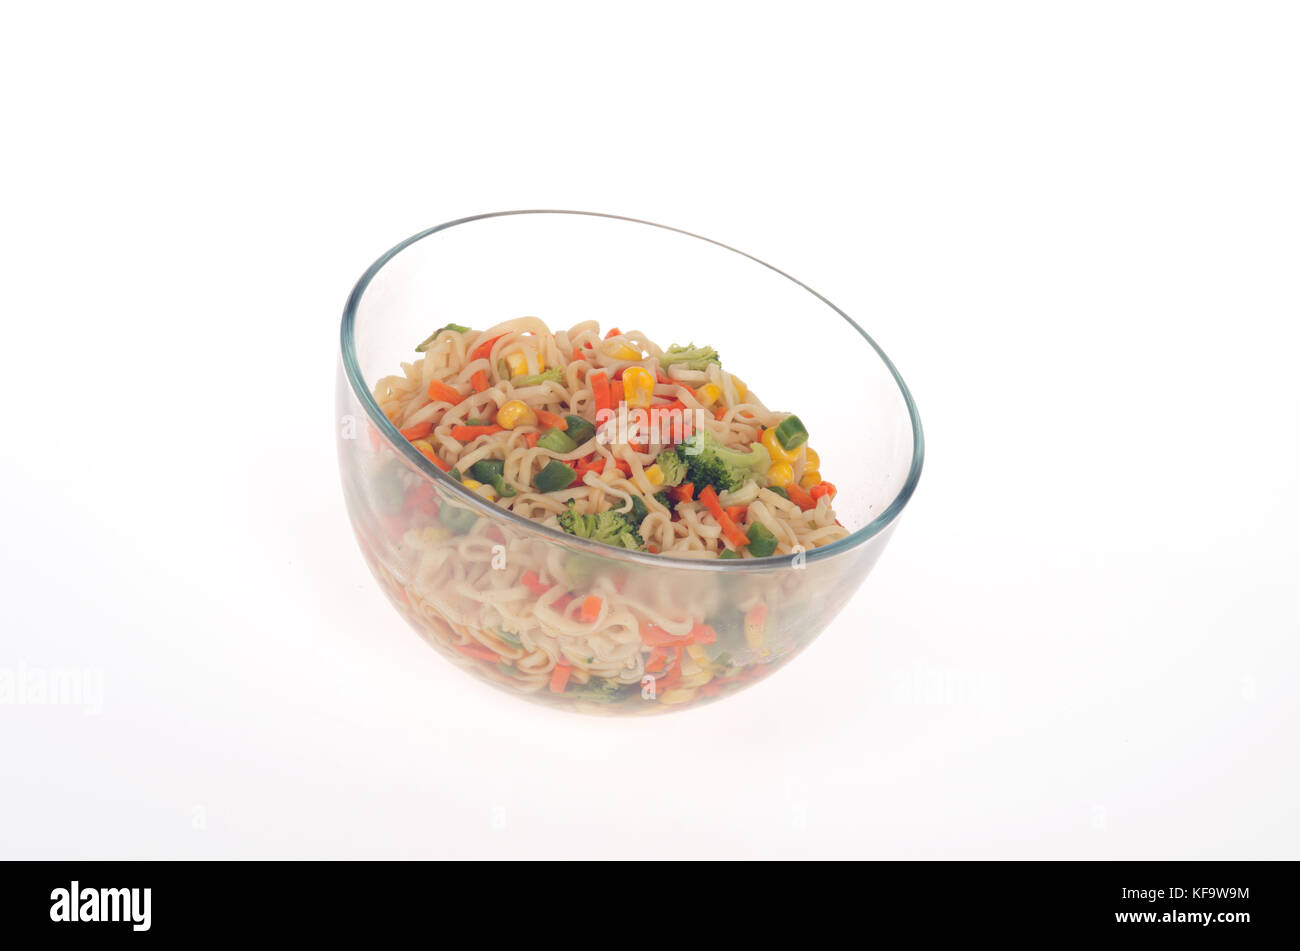 Bowl of vegetables with ramen noodles - Stock Image